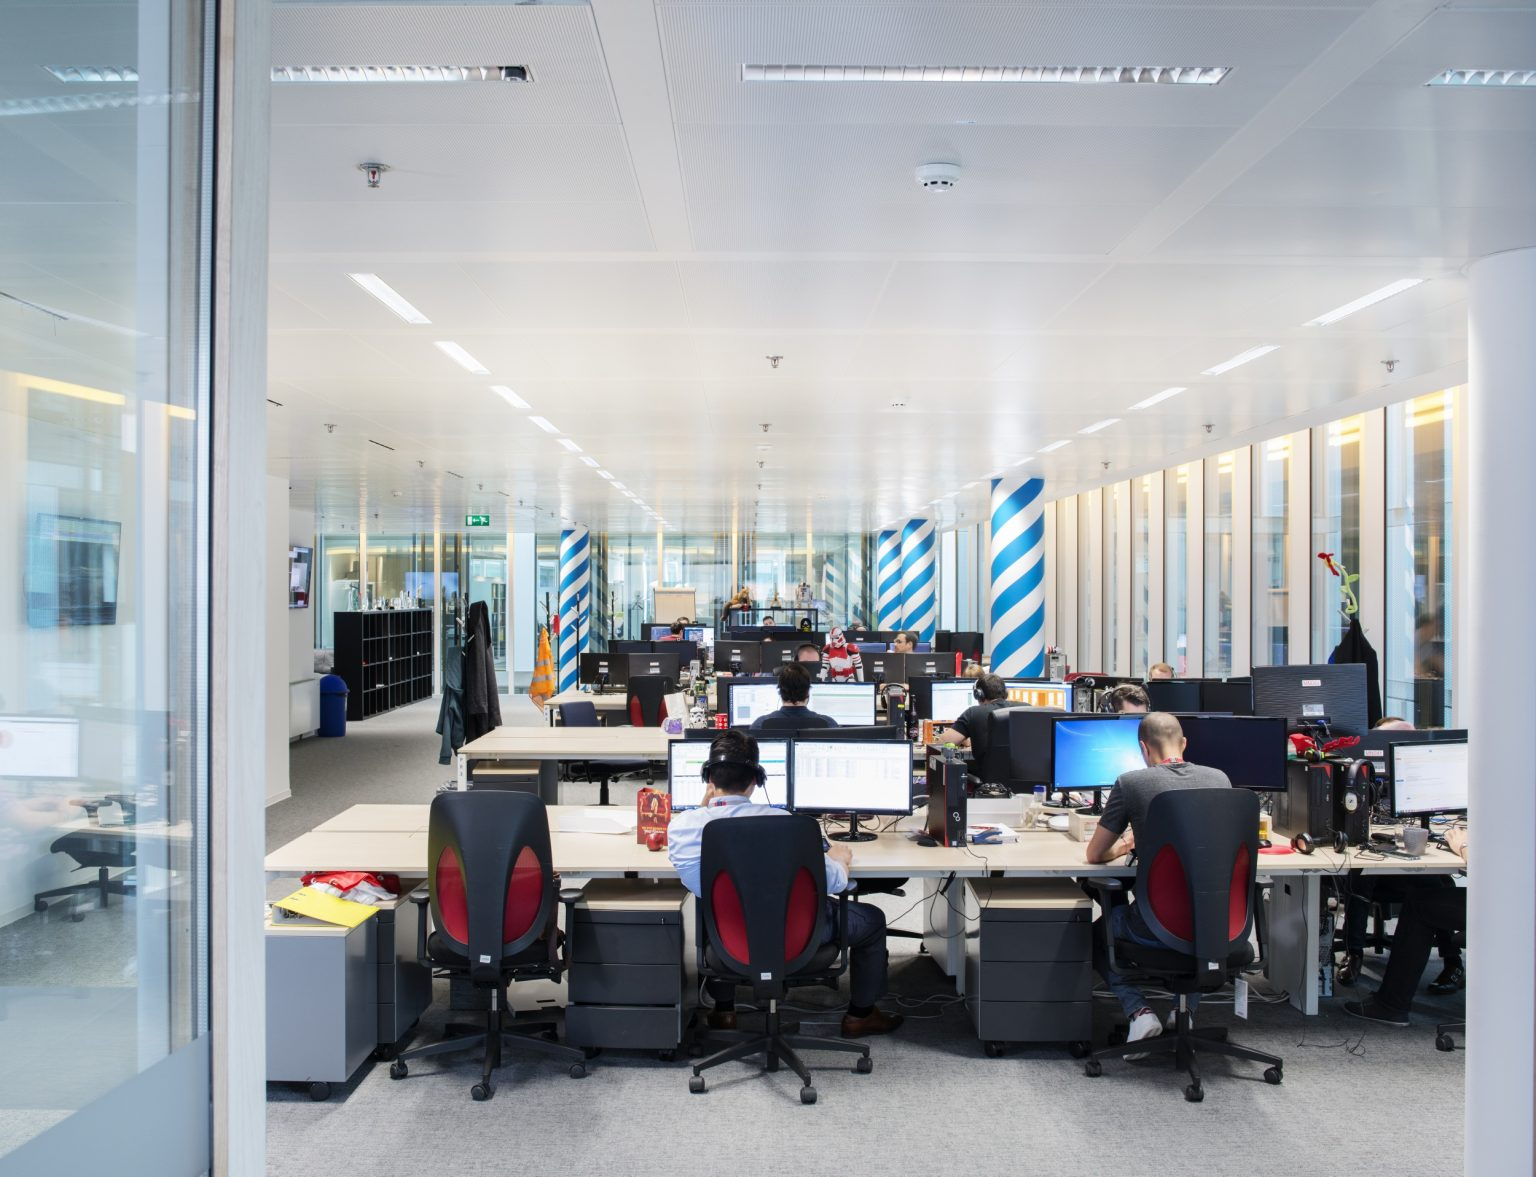 Grand Duchy of Luxembourg, Luxembourg City, July 2016: an interior view of the marketing department in the head quarter's office of Live Jasmine. Founded in Hungary in 2001 Live Jasmin is currently the largest platform provider in the Video chat industry: with 10.000 models online which can earn up to 50,000 euros per day, the web site - with HQ in Luxembourg and offices in Budapest, Los Angeles Amsterdam and Hong Kong- is ranking globally the number one in the industry for earnings, cam operations and number of visitors (35 millions per day). / Gran Ducato di Lussemburgo, Lussemburgo, Luglio 2016: una veduta interna dell'ufficio marketing presso il quartier generale di Live Jasmine . Fondato in Ungheria nel 2001, Live Jasmin è attualmente il principale sito dell'industria delle Video Chat erotiche; con 10.000 modelle online al giorno che possono arrivare a guadagnare fino a 50,000 euro al giorno, il sito - con quartier generale a Lussemburgo e uffici a Budapest, Los Angeles, Amsterdam e Hong Kong - è il numero uno al mondo nel settore per guadagni, numero di cam operations e di visitatori (35 milioni al giorno).